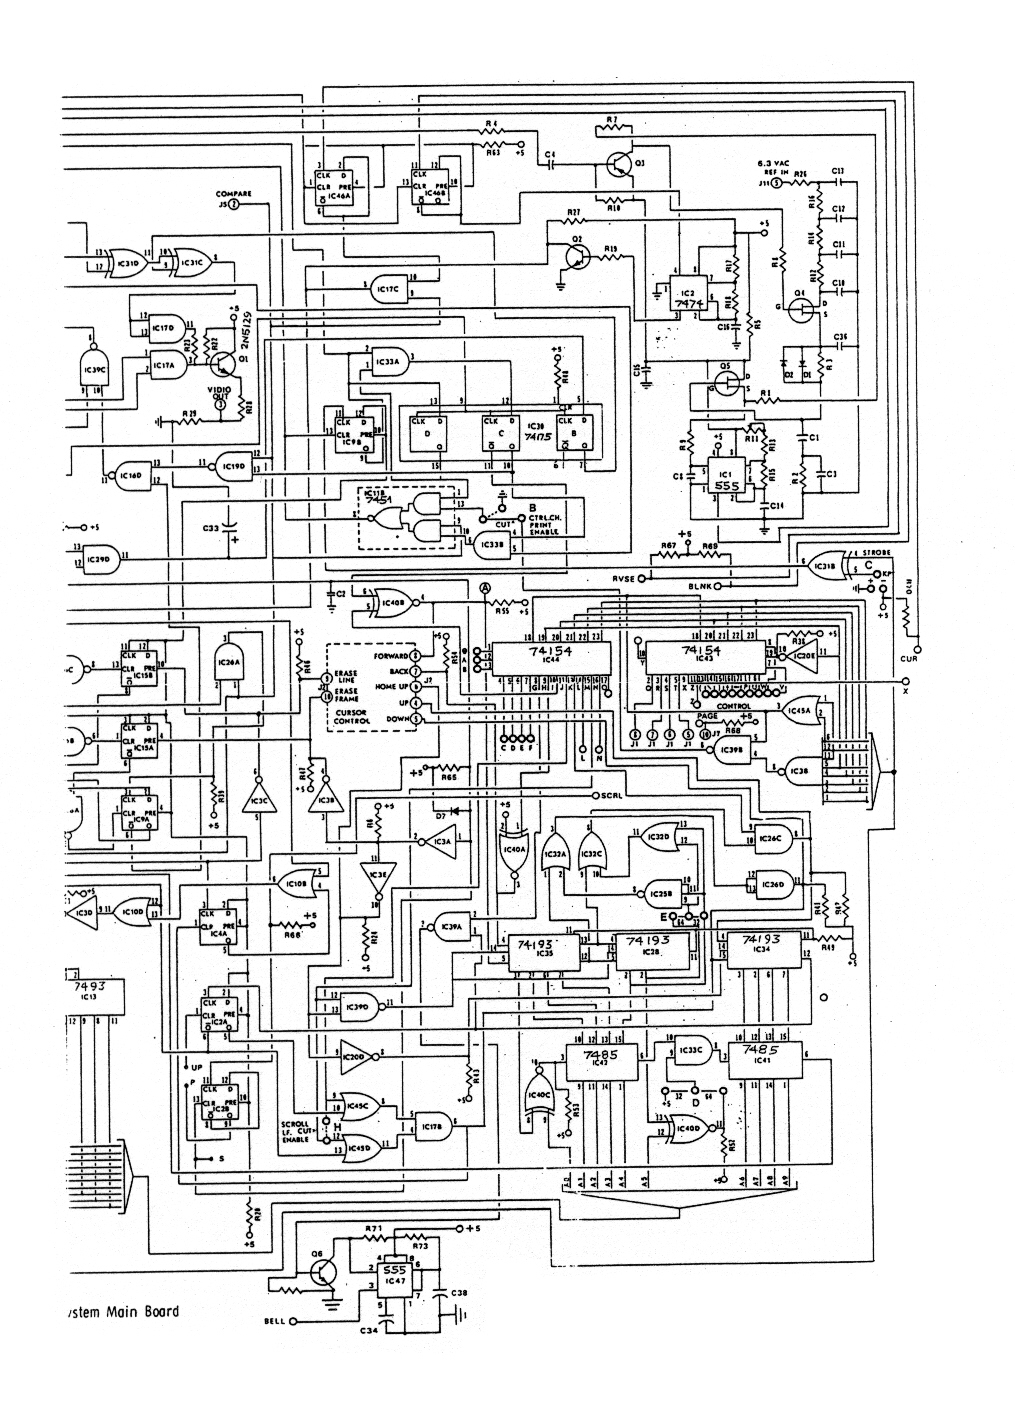 Fine 1086 International Tractor Wiring Diagram Frieze Wiring International  Truck 4300 Wiring-Diagram 2001 International 4700 Wiring Diagram